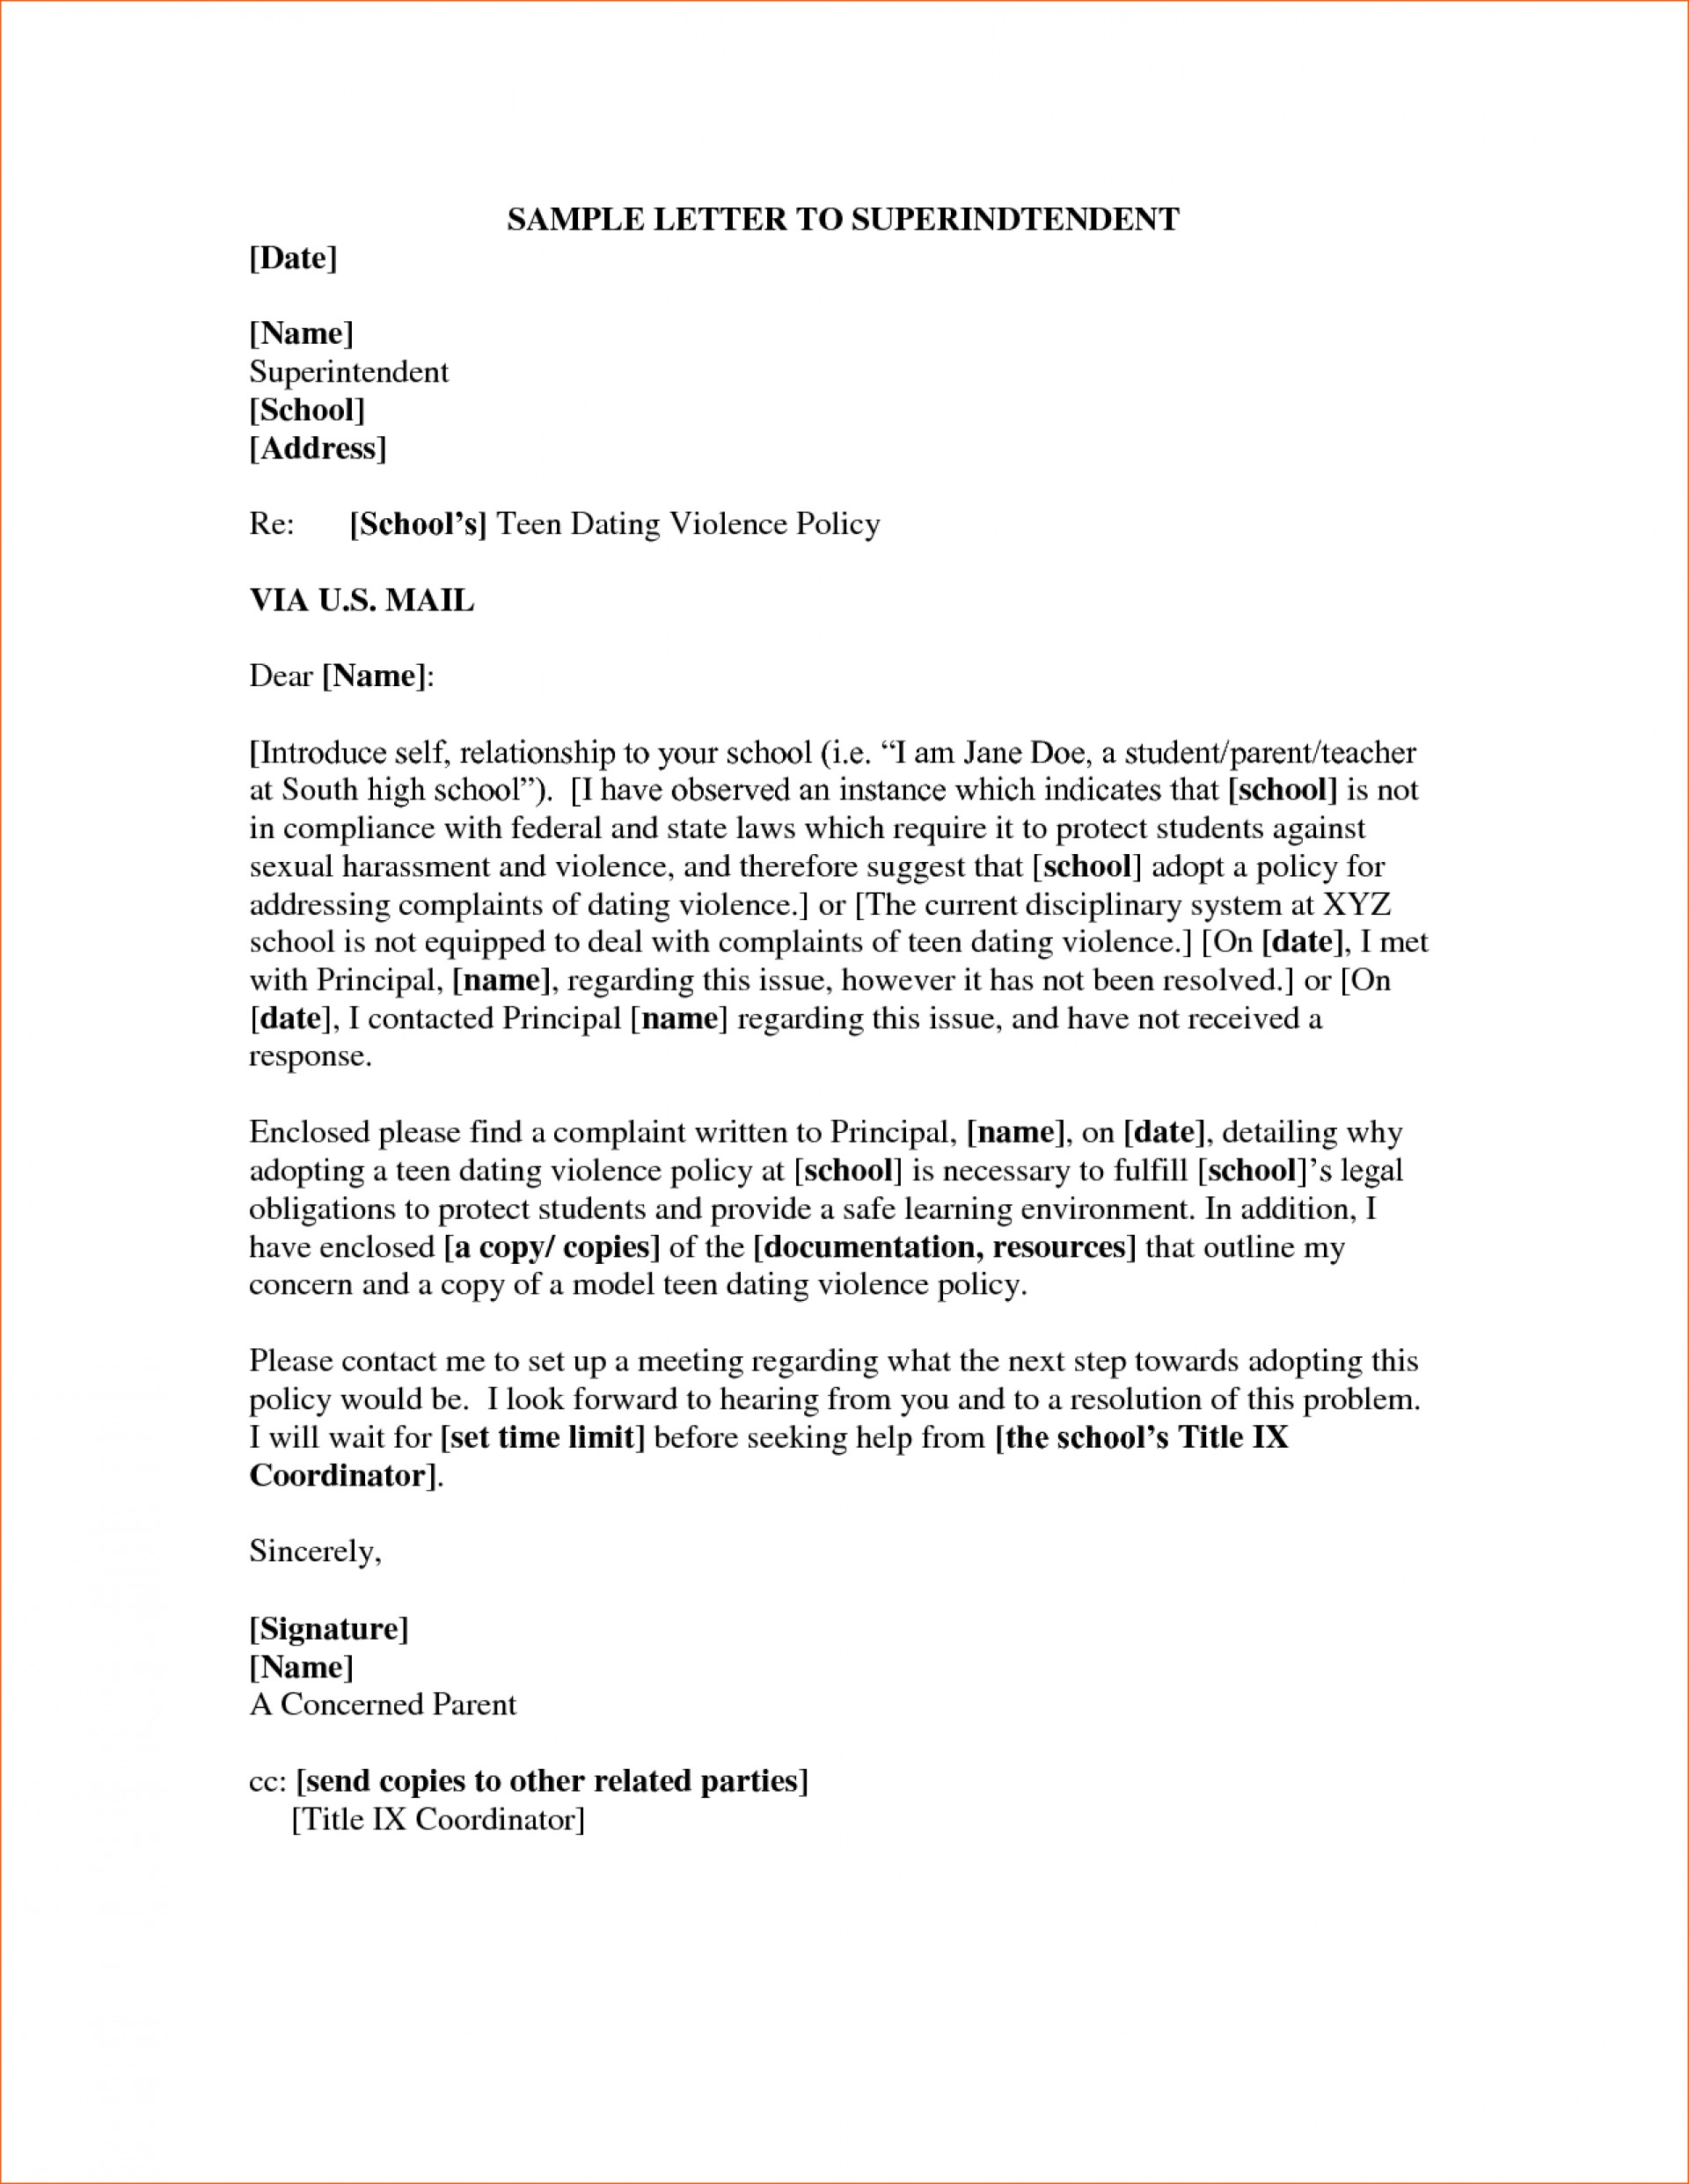 012 Self Introduction Essay Example Letter Breathtaking Sample For Interview Job Application Examples School Students 1920